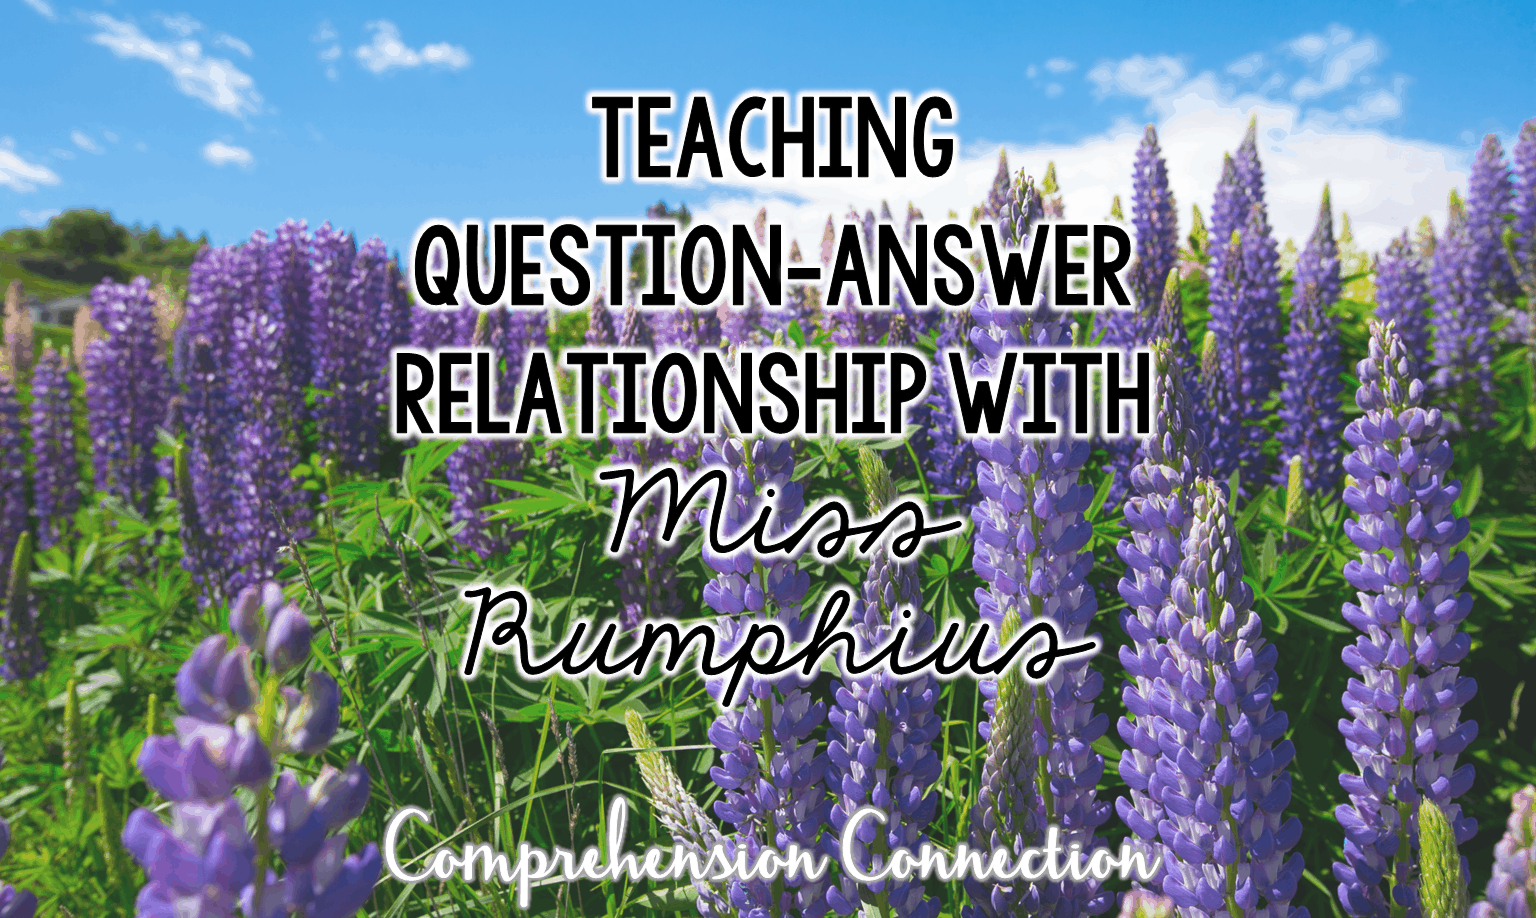 One great strategy for helping students with testing is QAR. QAR stands for Question-Answer Relationship. This post explains it all.